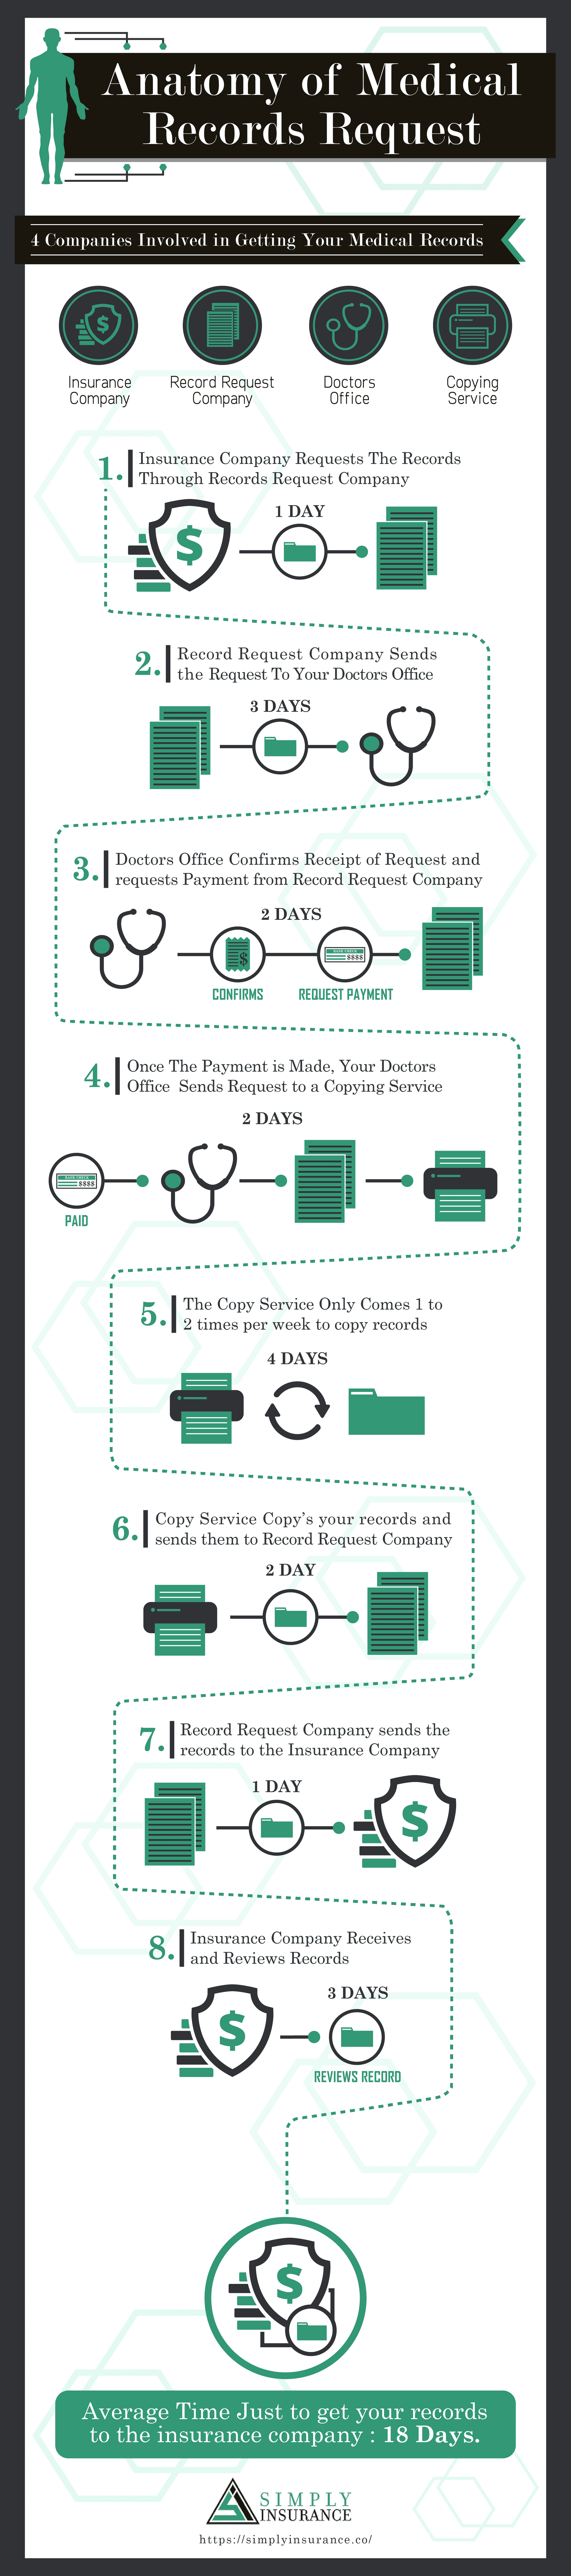 anatomy of a medical records request infographic